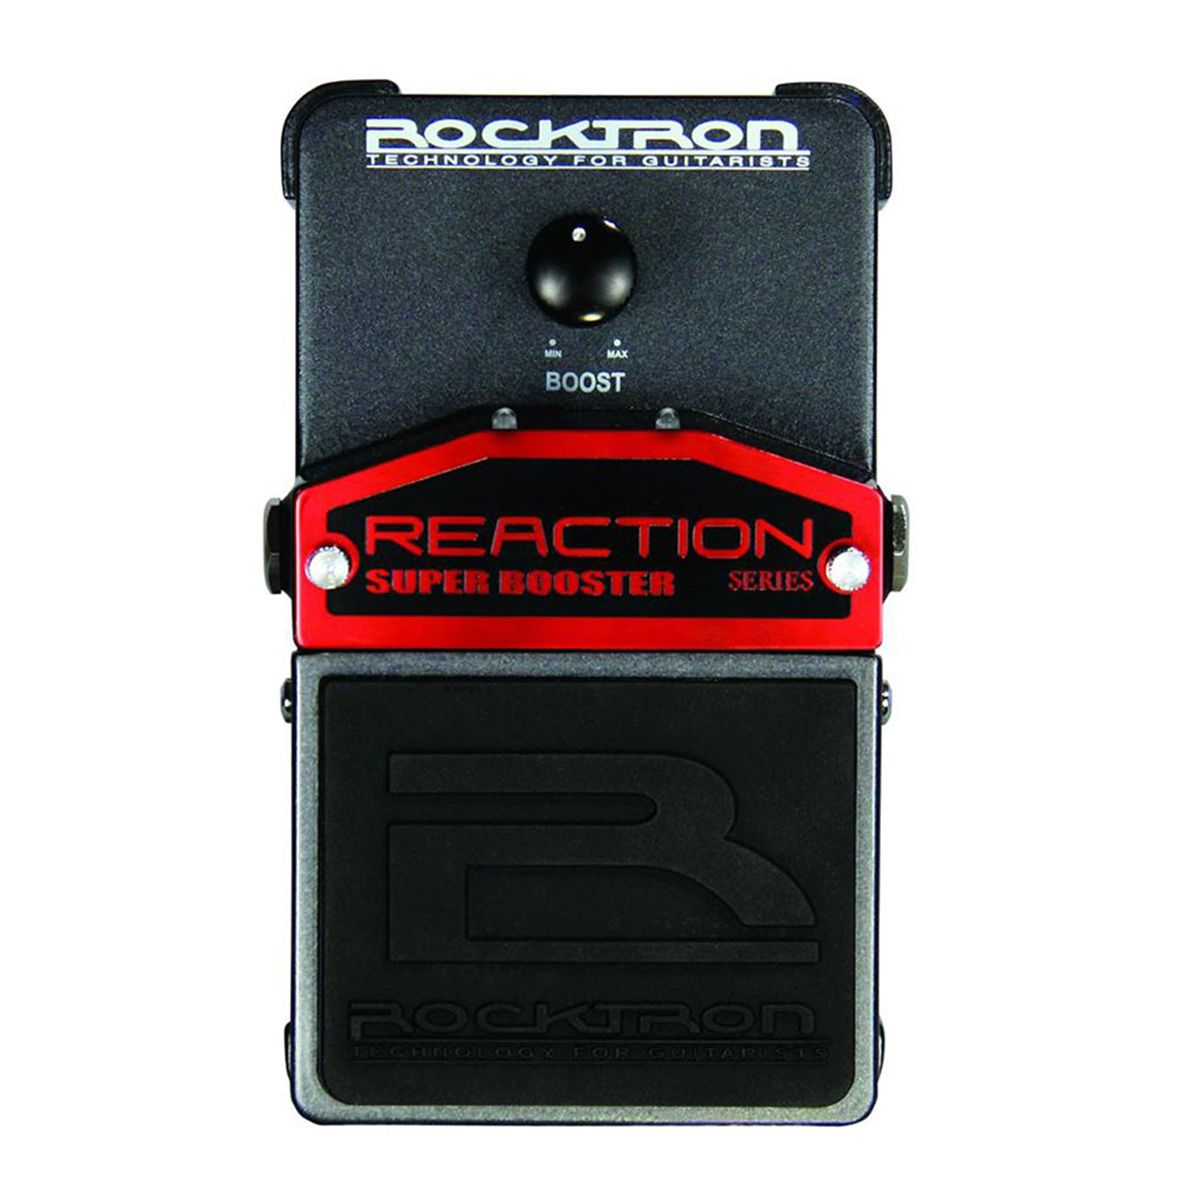 Pedal de Efeitos Rocktron Reaction Super Booster